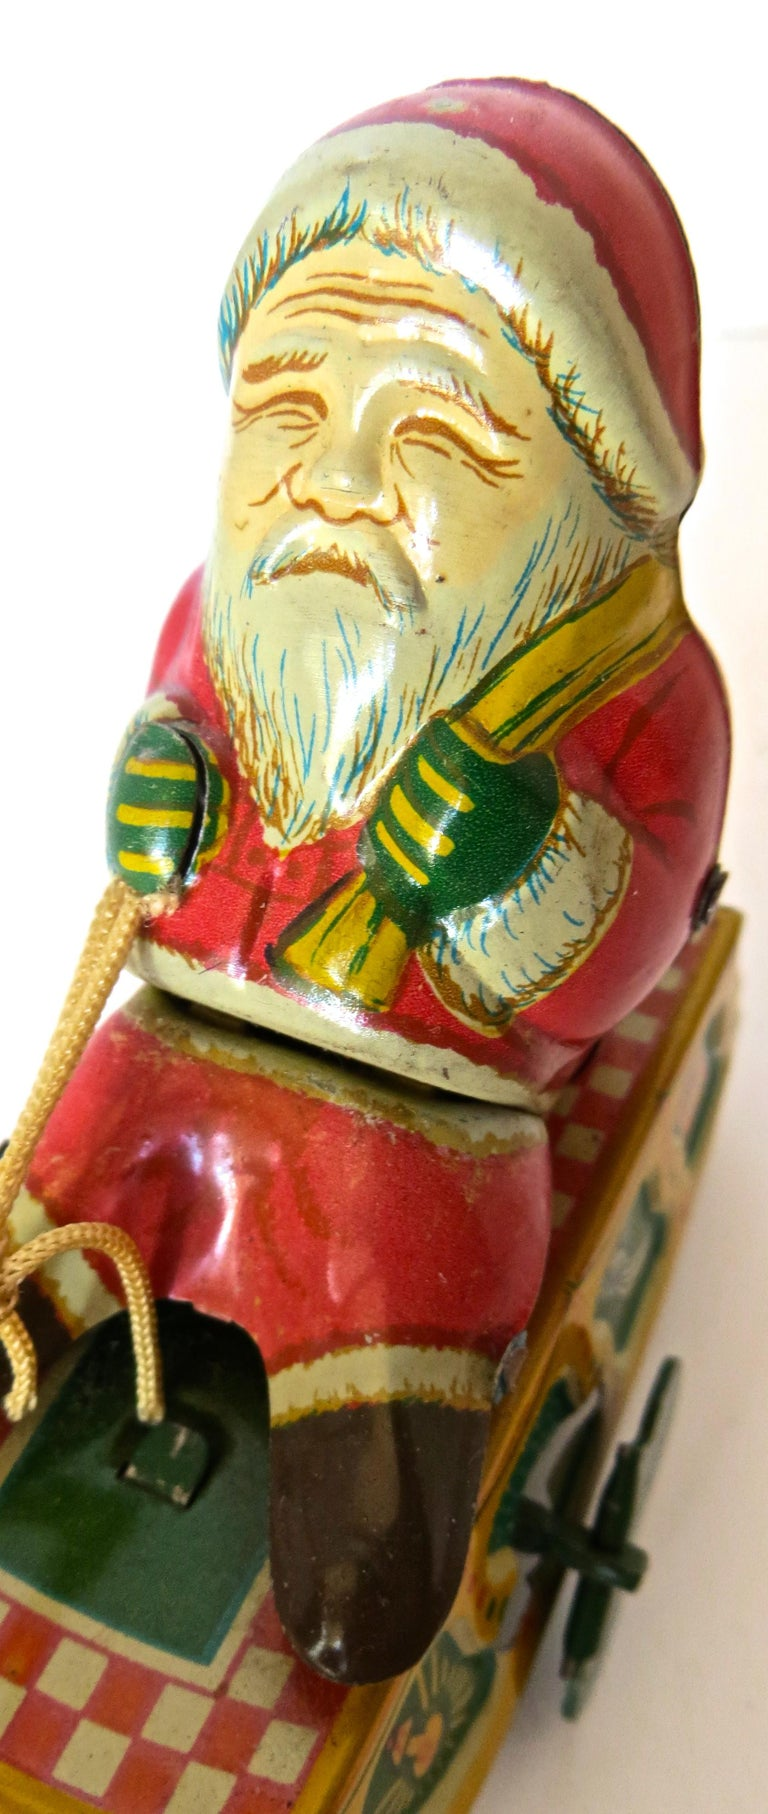 Santa Claus in a Sleigh Wind Up Toy Japan, circa 1953 In Good Condition For Sale In Incline Village, NV